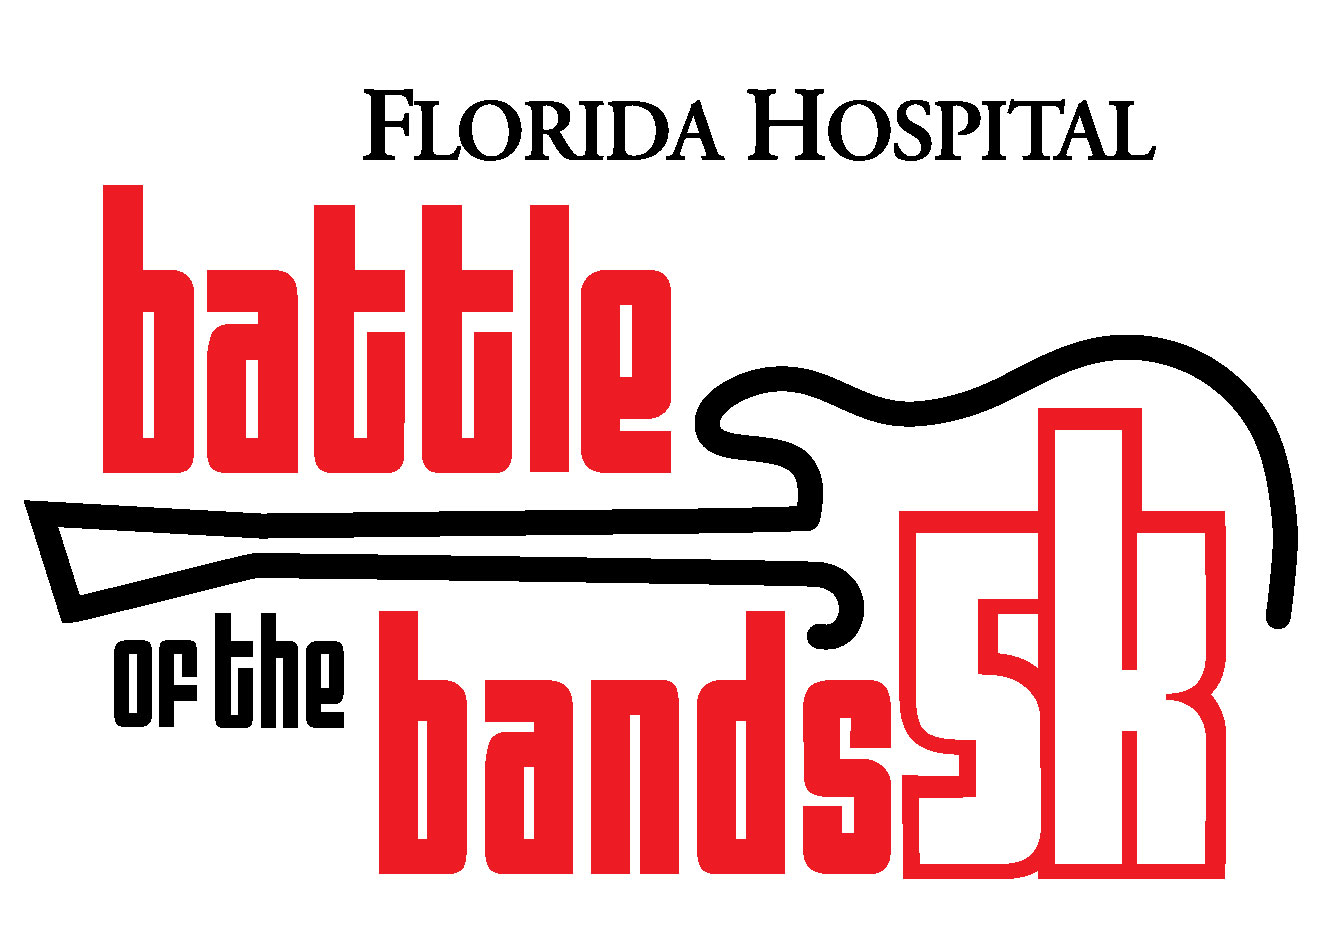 Florida Hospital Battle of the Bands 5k (Running Series Event #2)